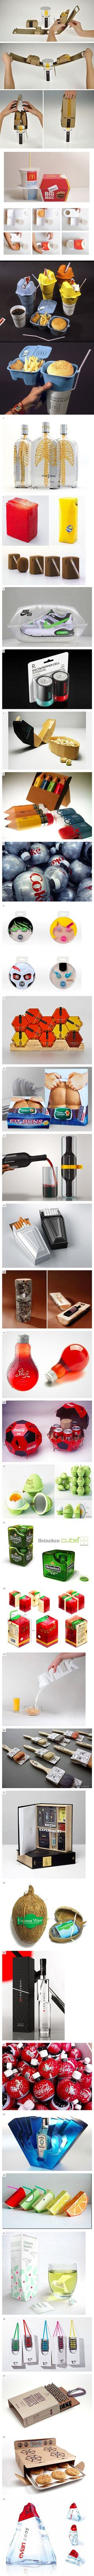 Need some inspiration? Here are some ultra creative packaging designs that think outside the box to start your day off.